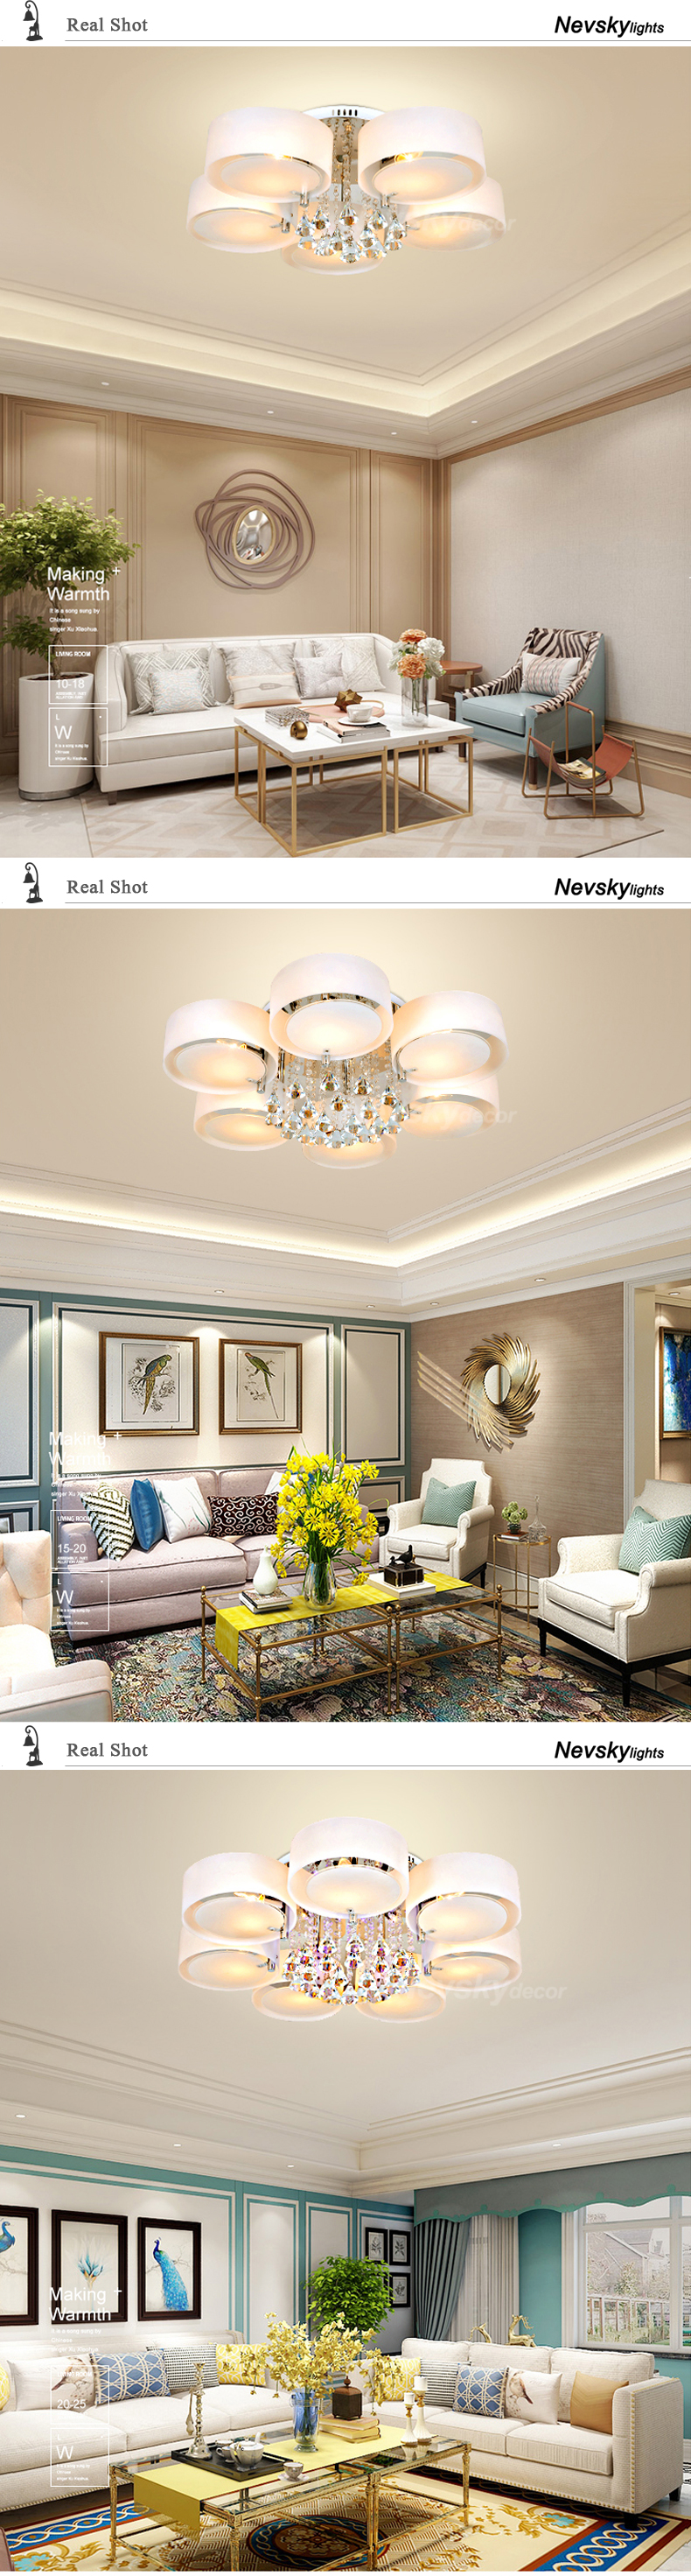 H308ae08d4e1843d68fcc6ad5de0b5436Q Modern crystal Ceiling Lights living fashionable design light dining  changeable led ceiling lamp bedroom white shade acrylic